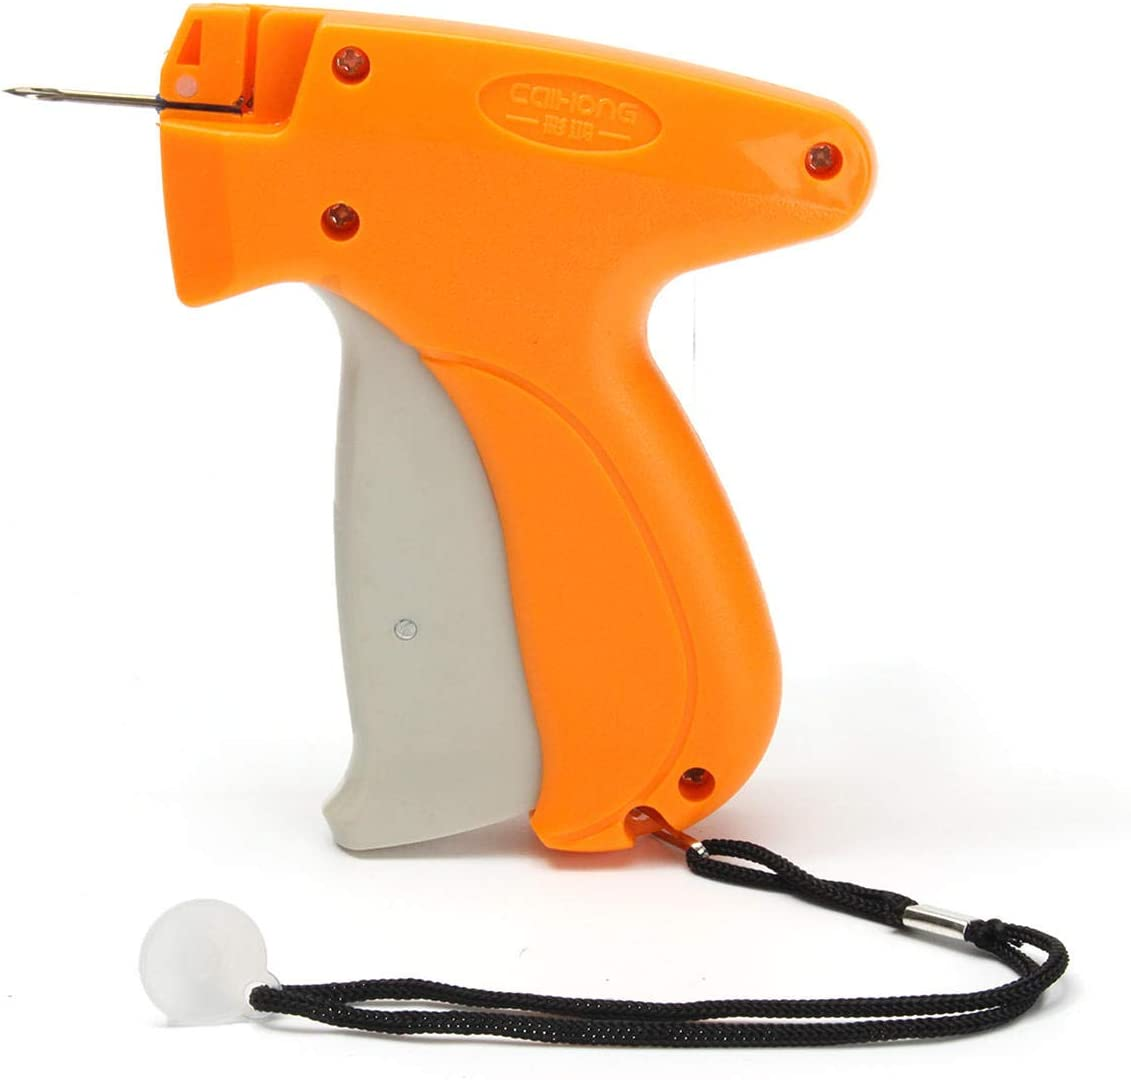 Garment CLOTHING PRICE LABEL TAGGING TAG TAGGER GUN WITH 5000 BARBS 5 Needle